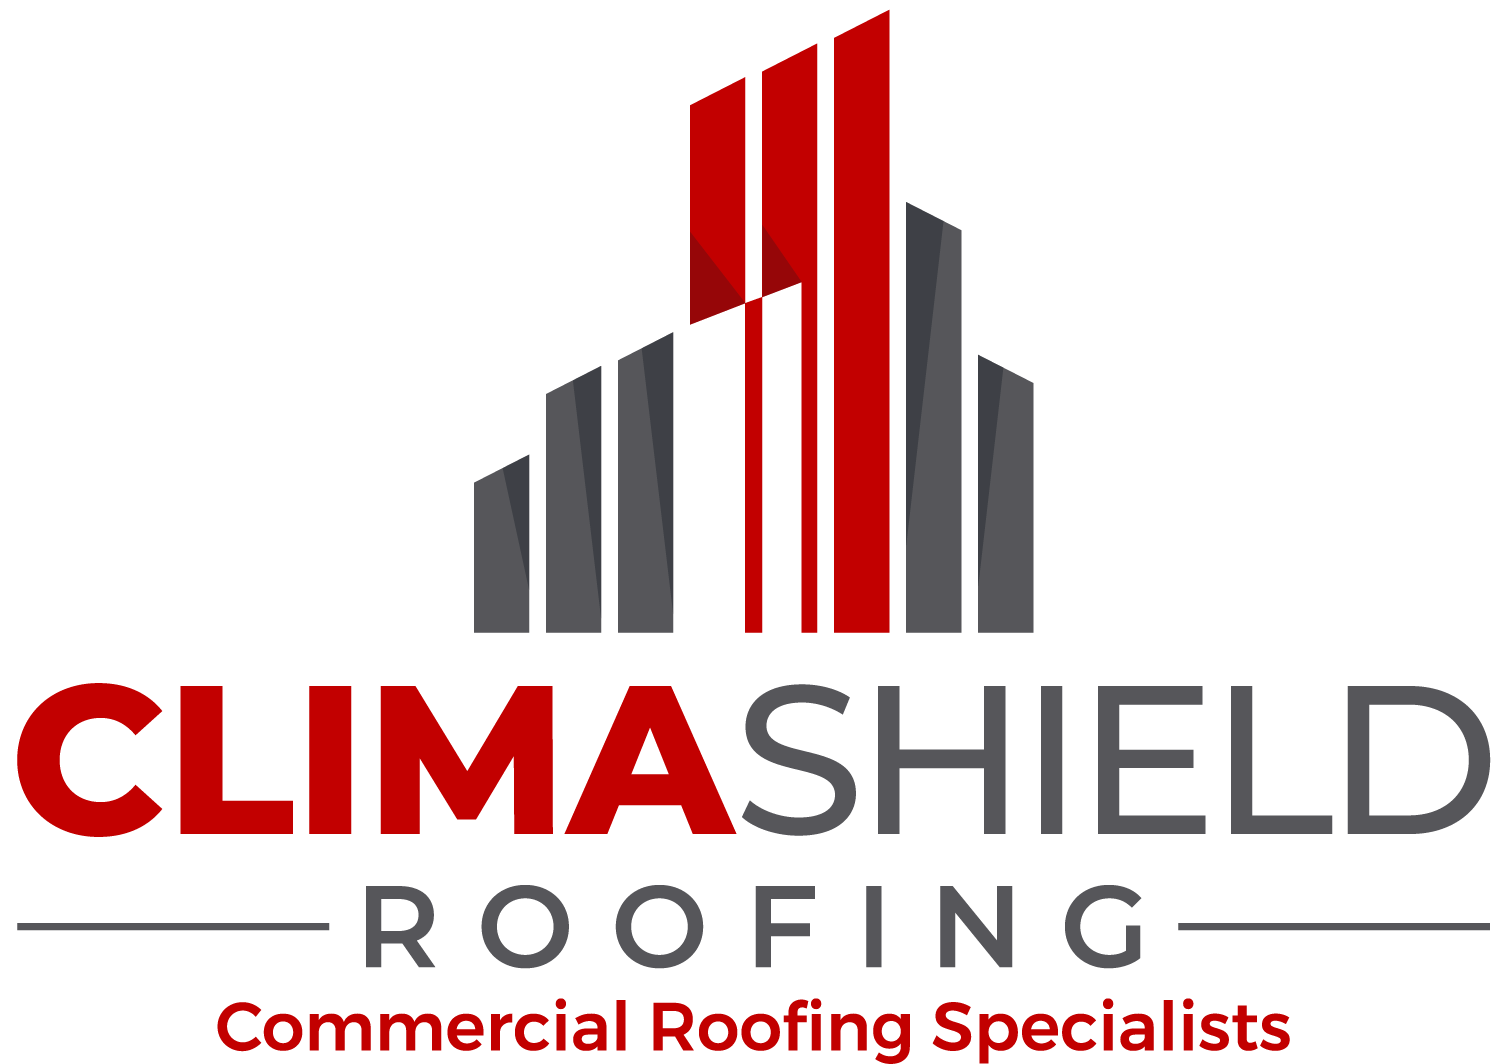 ClimaShield Roofing